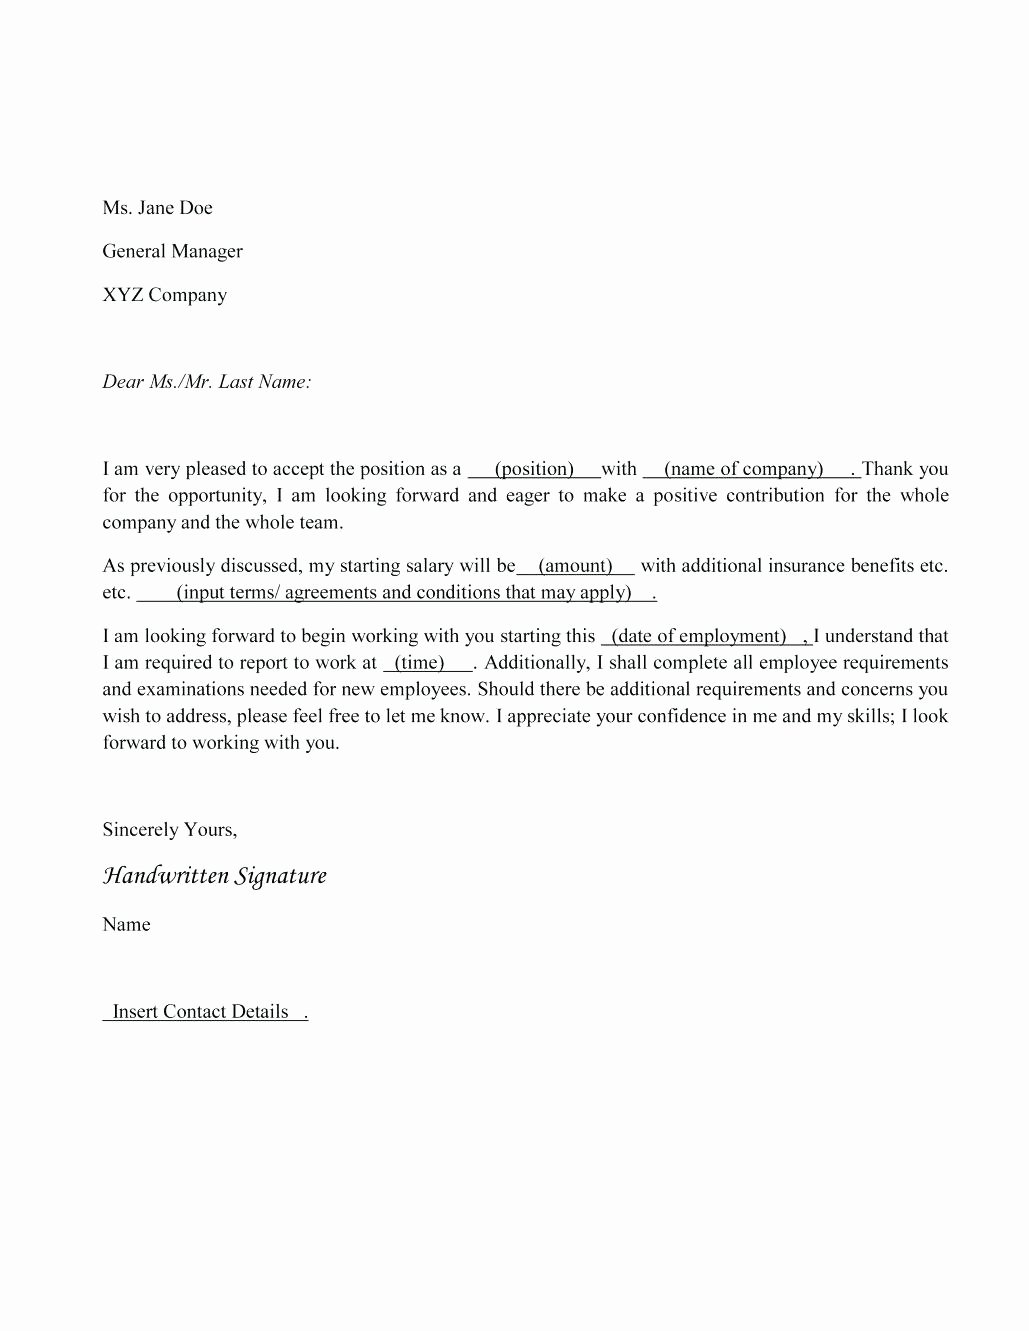 Letter Of Rescission Template Fresh Rescind Job Acceptance Sample Letter